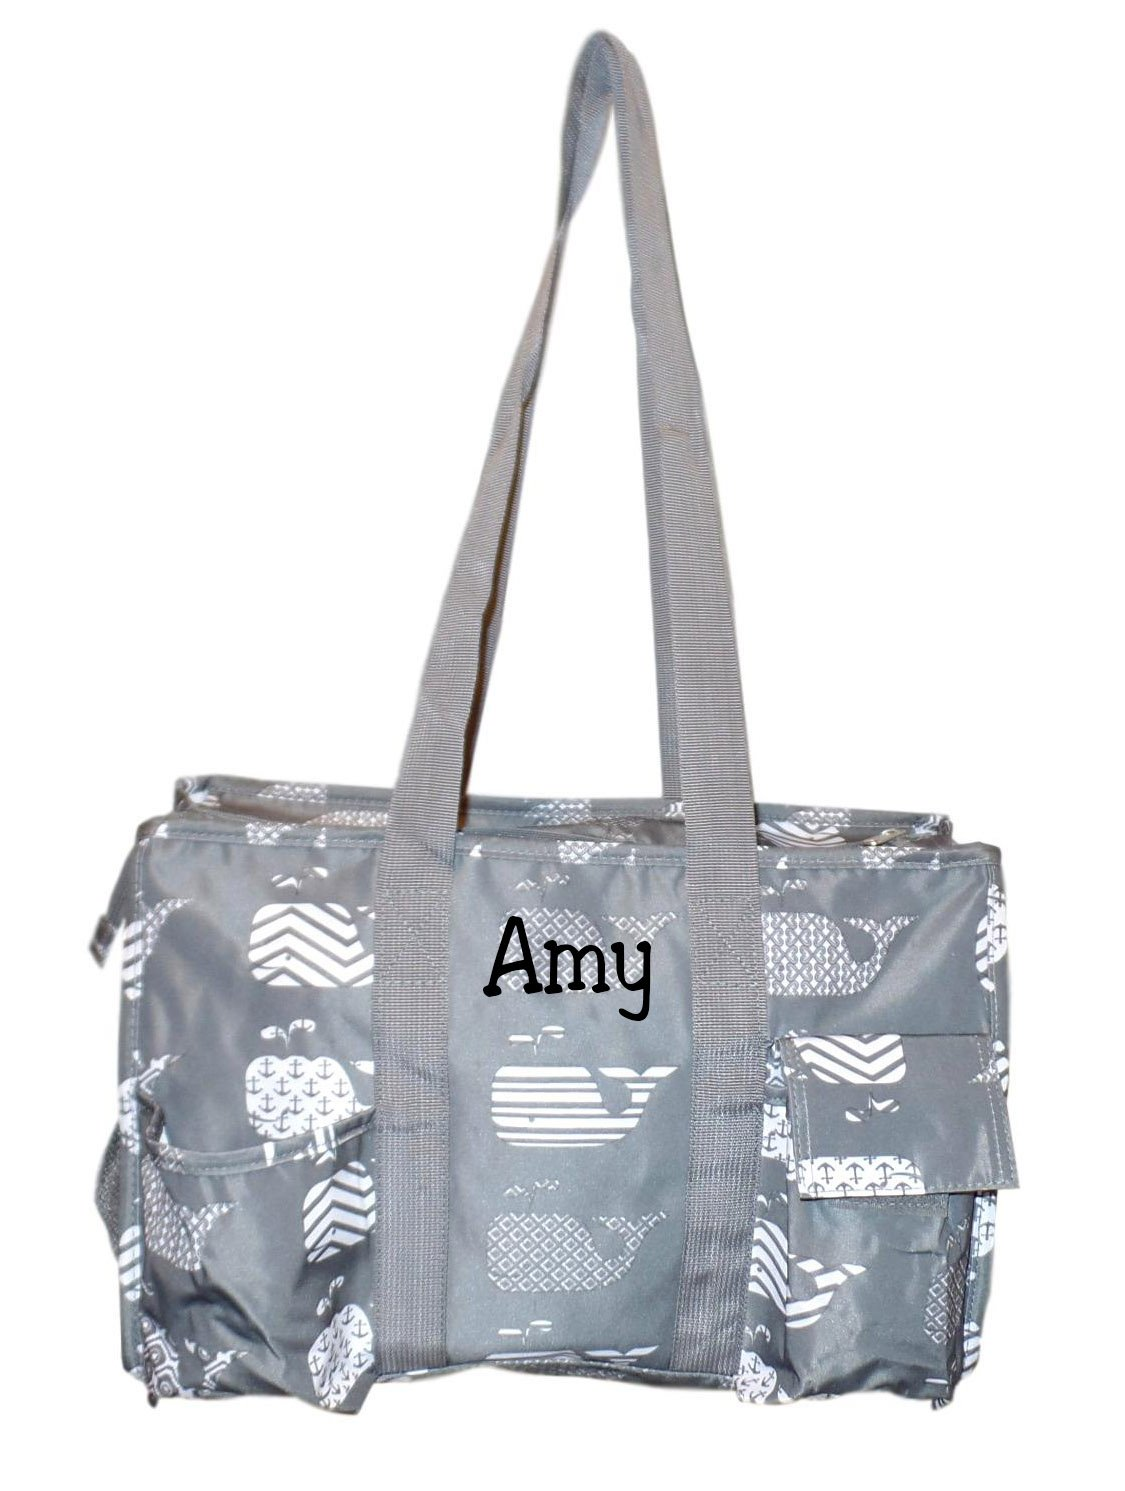 Fashionable Zipper Top Organizing Beach Bag Tote Diaper Bag Weekender (Gray Whale - Embroidered Whale)